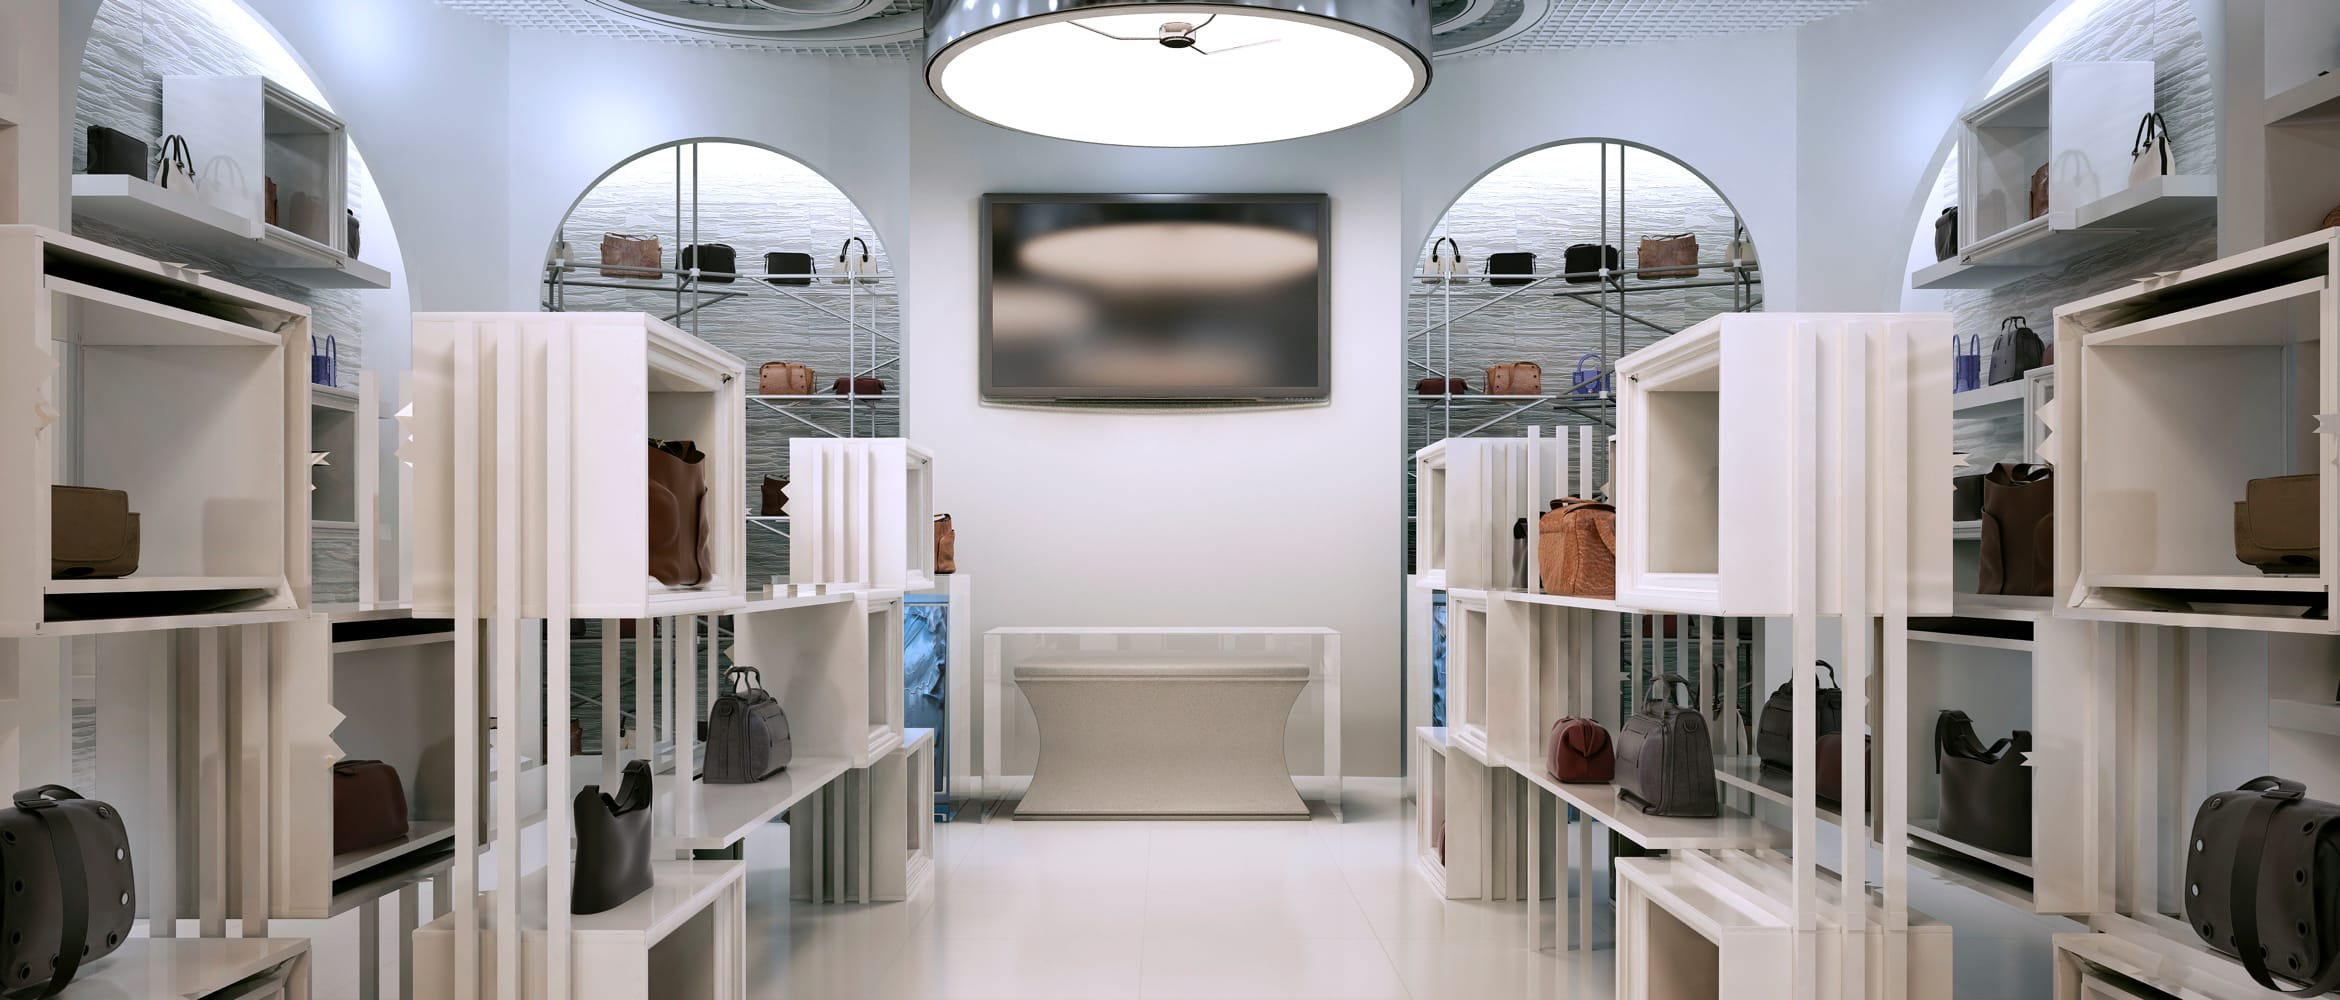 the retail store of the future, modern looking setting with technology for better in-store experiences